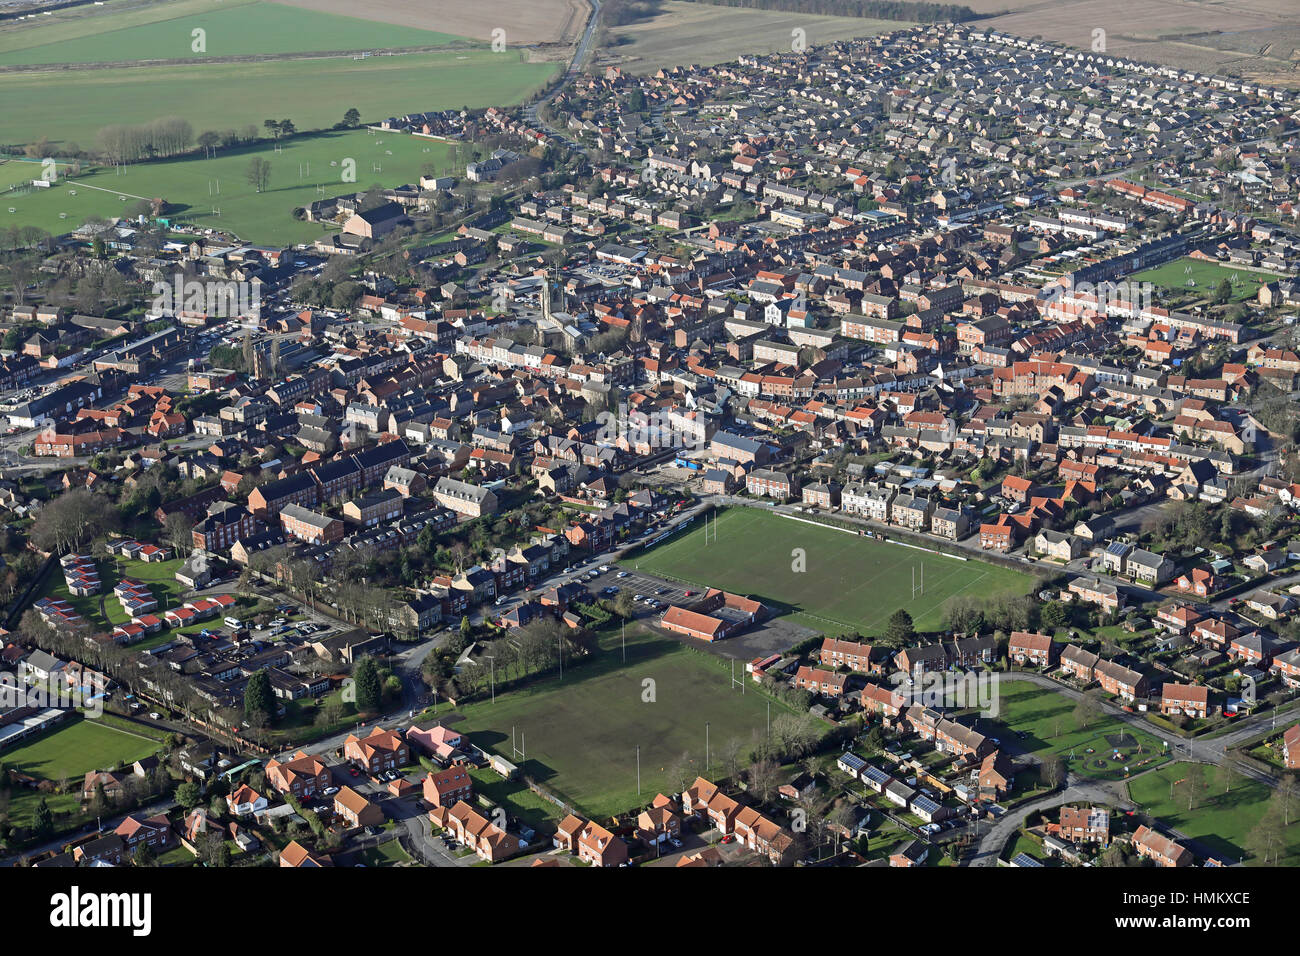 aerial view of Pocklington town centre in East Yorkshire, UK - Stock Image